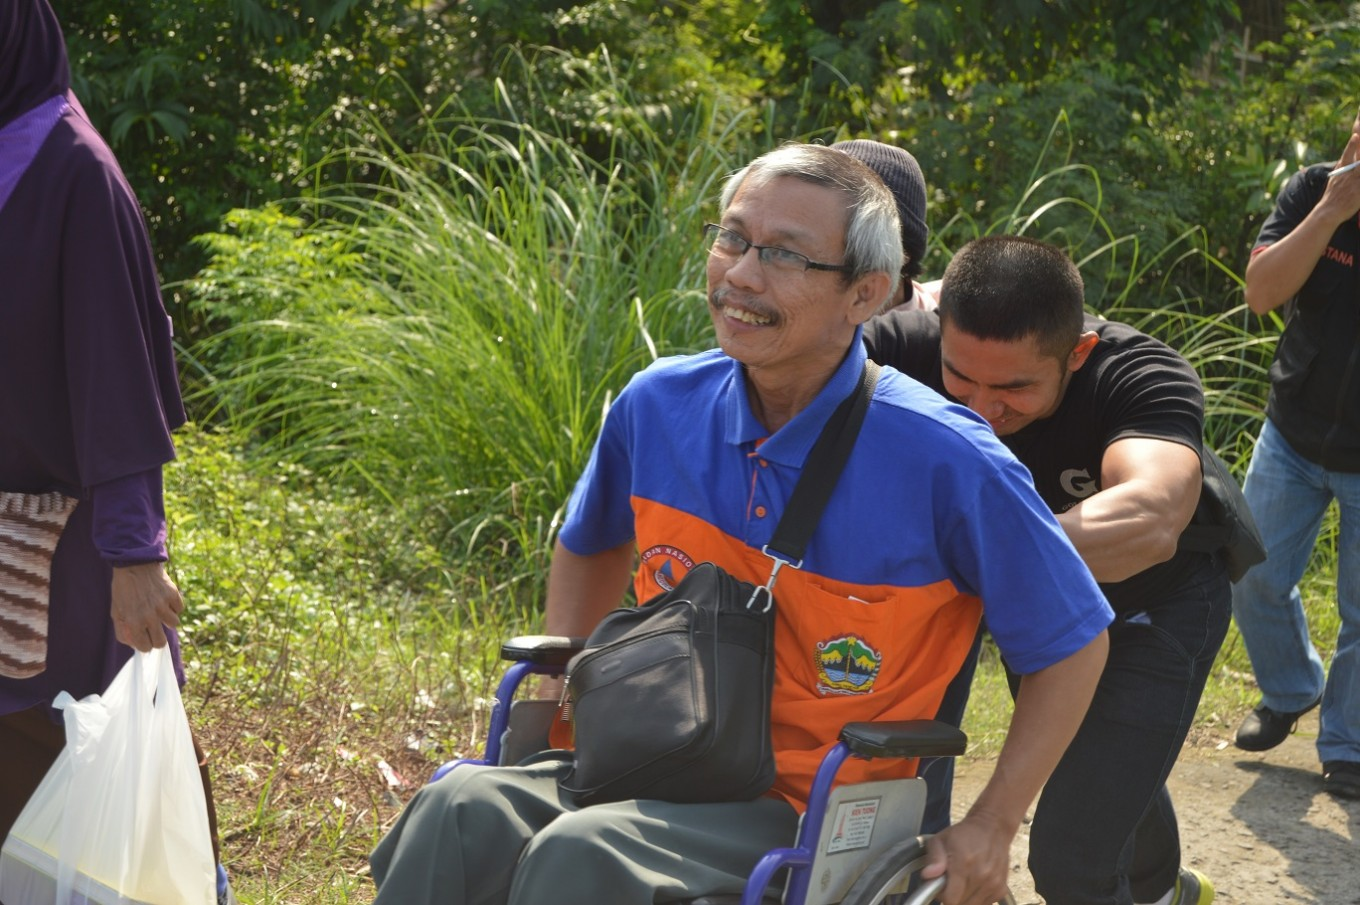 Mapping skills for disabled communities: Paving the road to inclusive disaster management